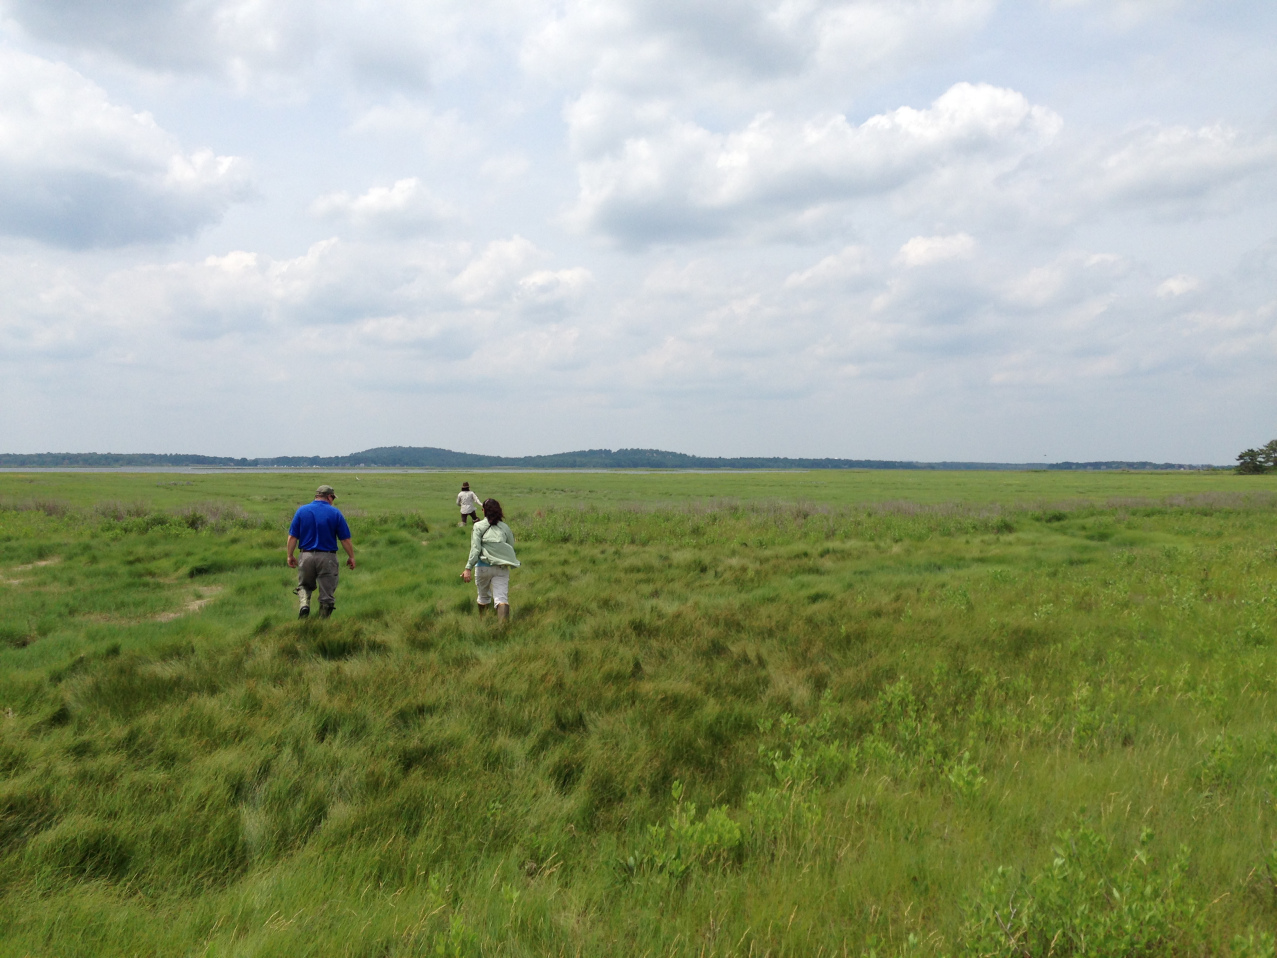 caption-service-staff-visit-the-great-marsh-at-parker-river-refuge-to-preview-upcoming-salt-marsh-resilience-projects-awarded-through-department-of-the-interior-credit-margie-brennerusf.jpg